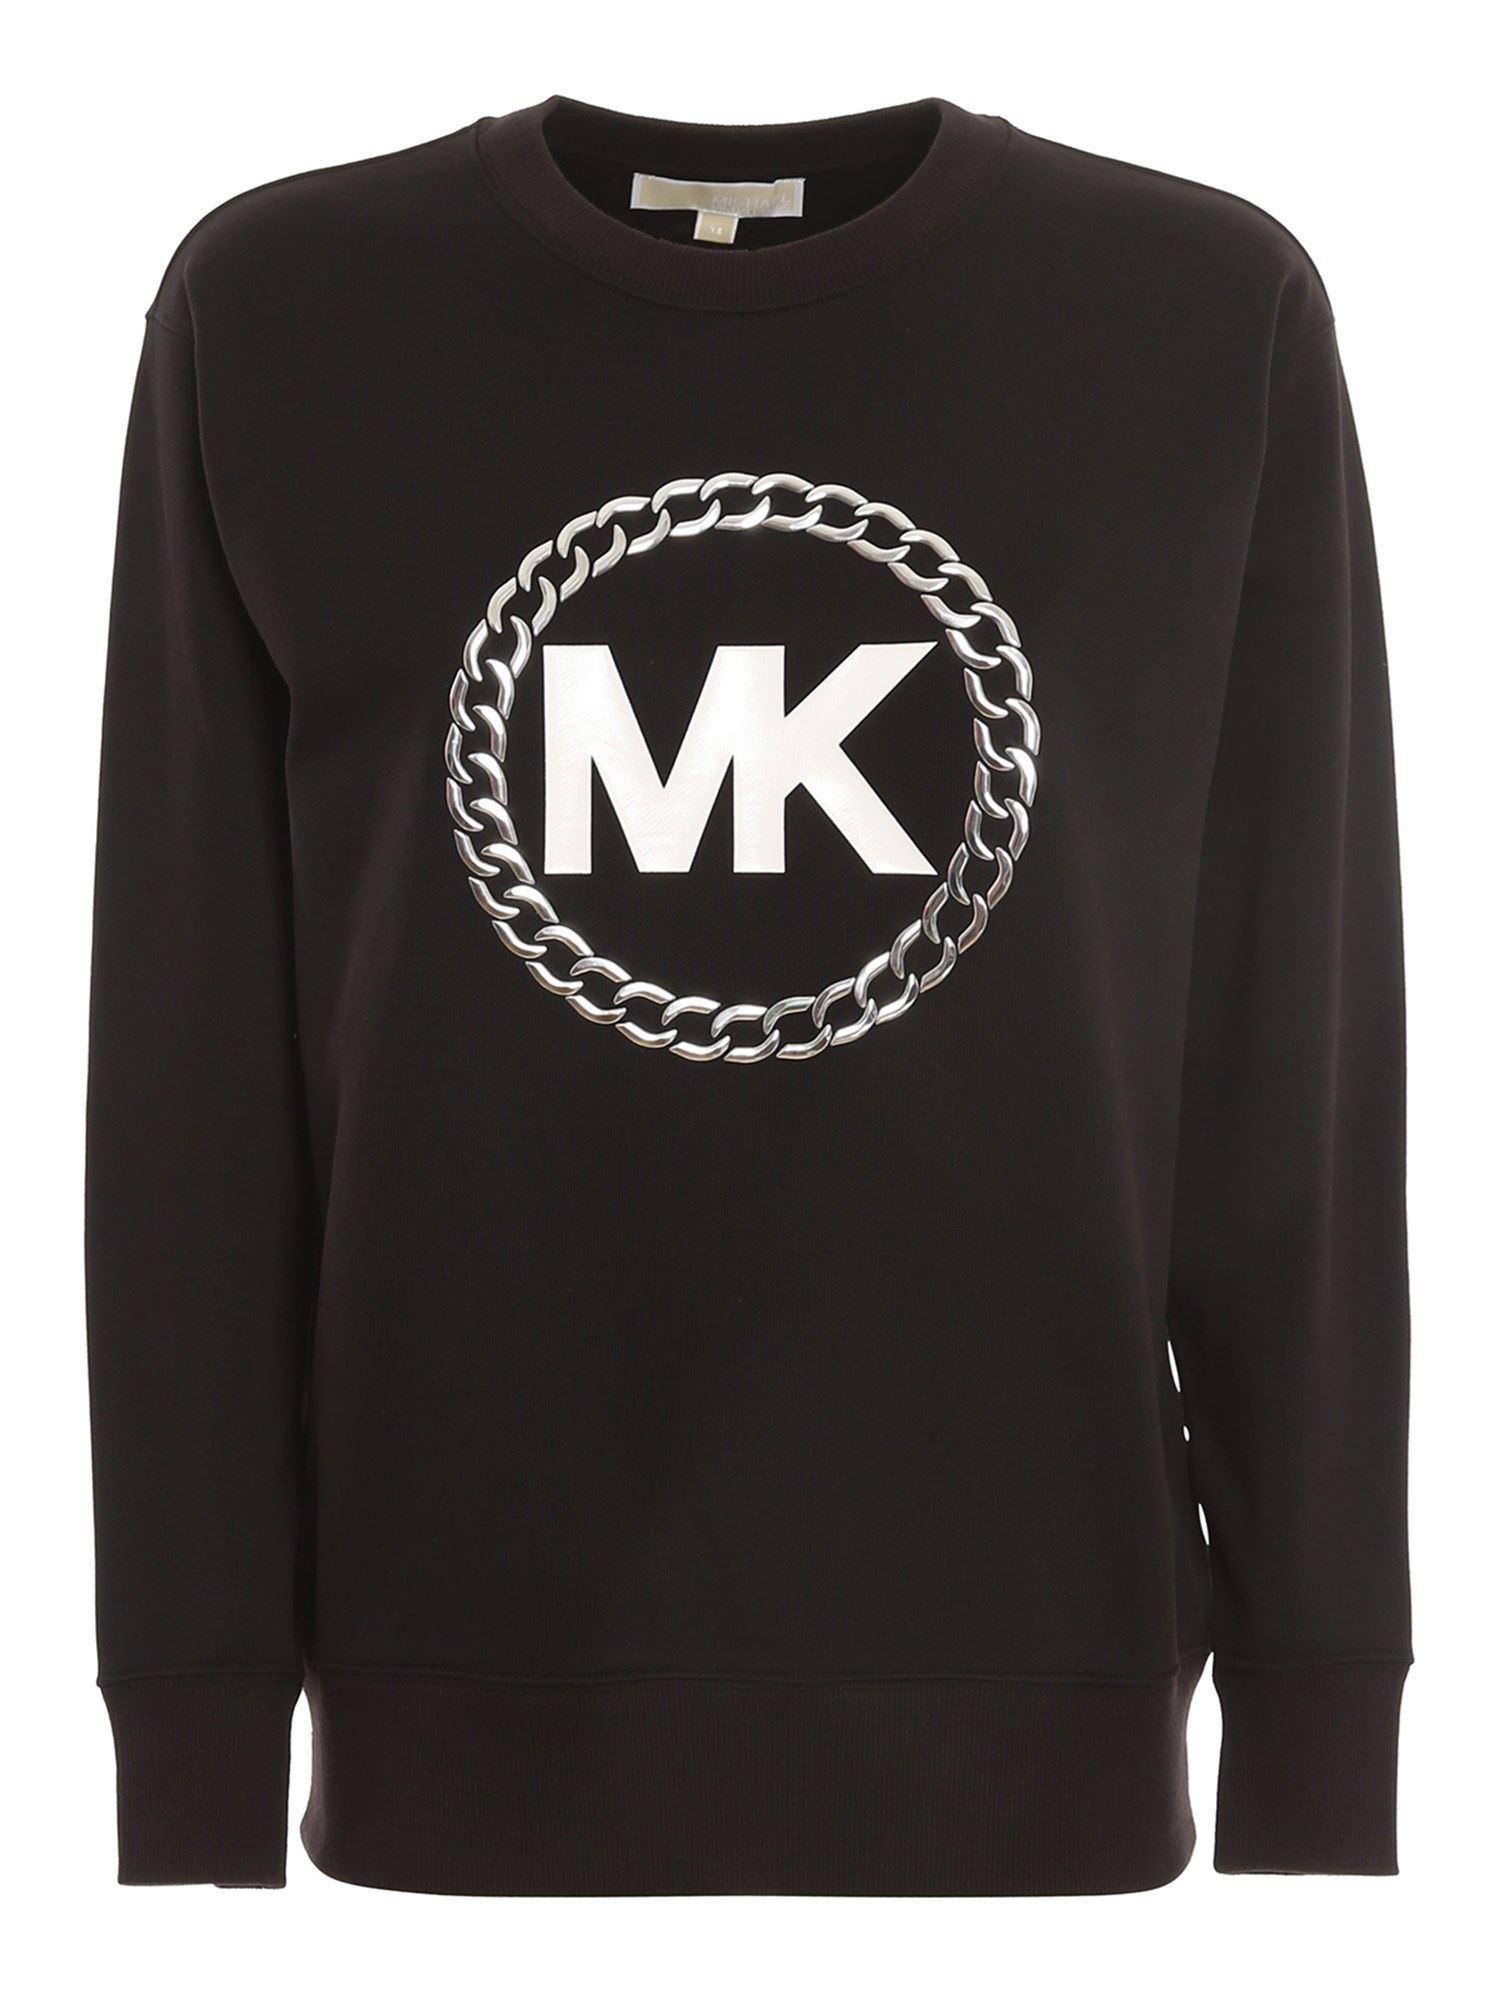 Michael Kors CHAIN LOGO SWEATSHIRT IN BLACK